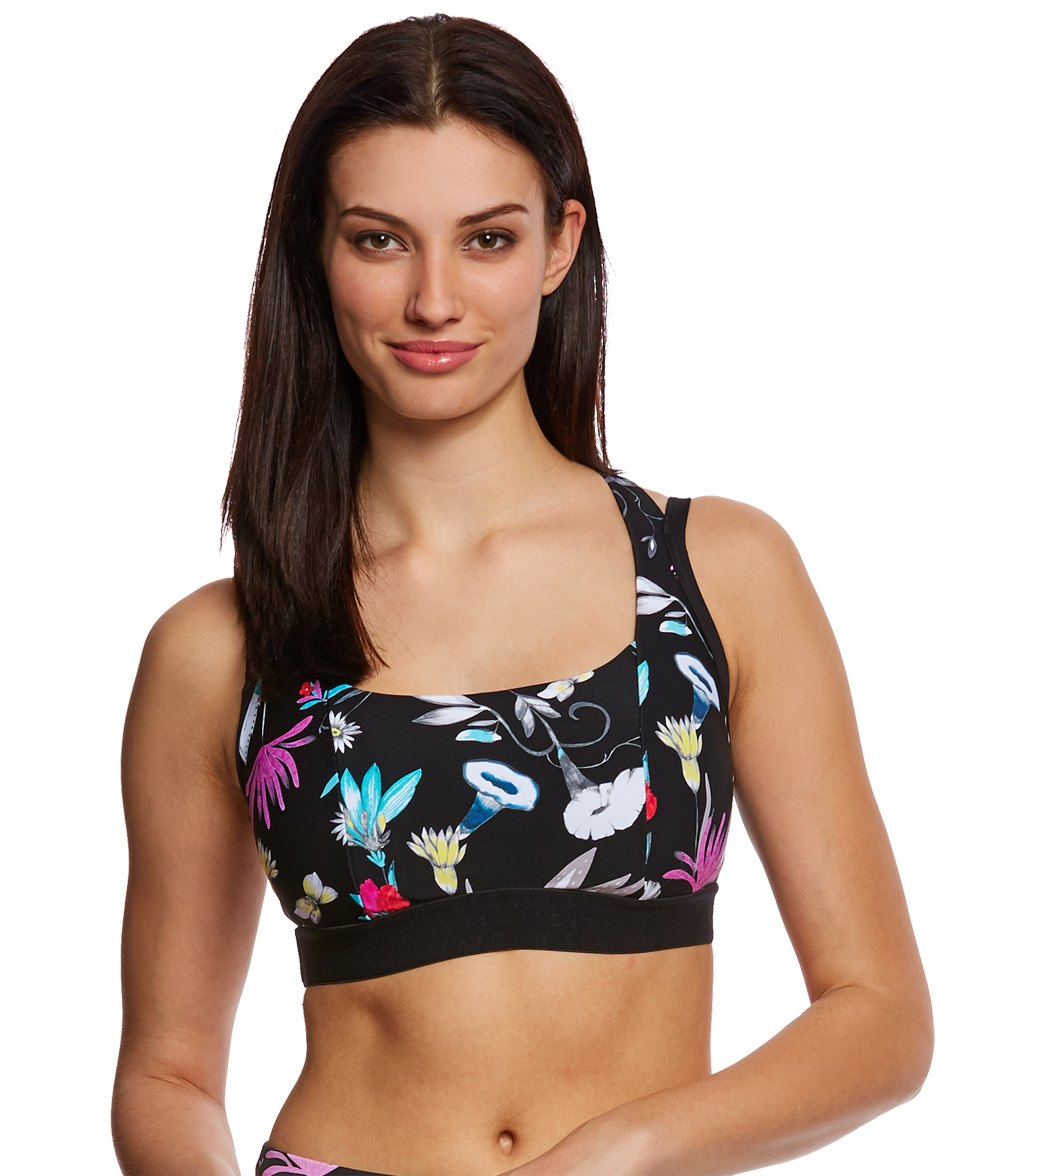 69b73c7c74 Seafolly Women s Flower Festival Sports Bra Top (D-DD Cup) at  SwimOutlet.com - Free Shipping